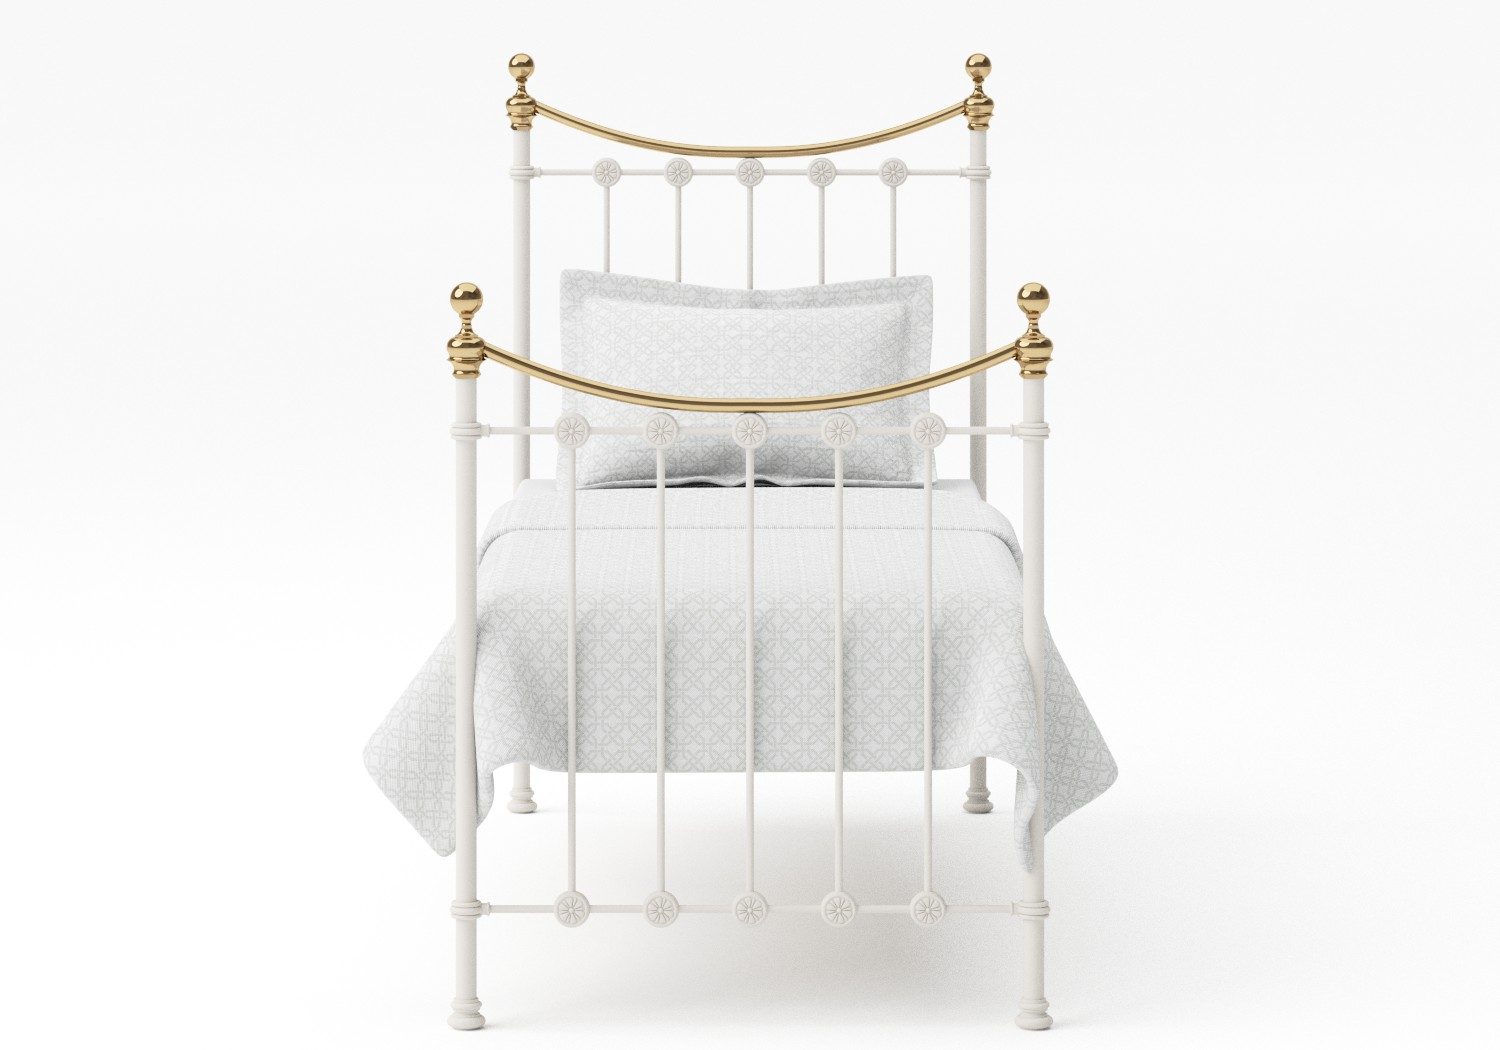 Carrick Single Iron/Metal Bed in Glossy Ivory with brass details